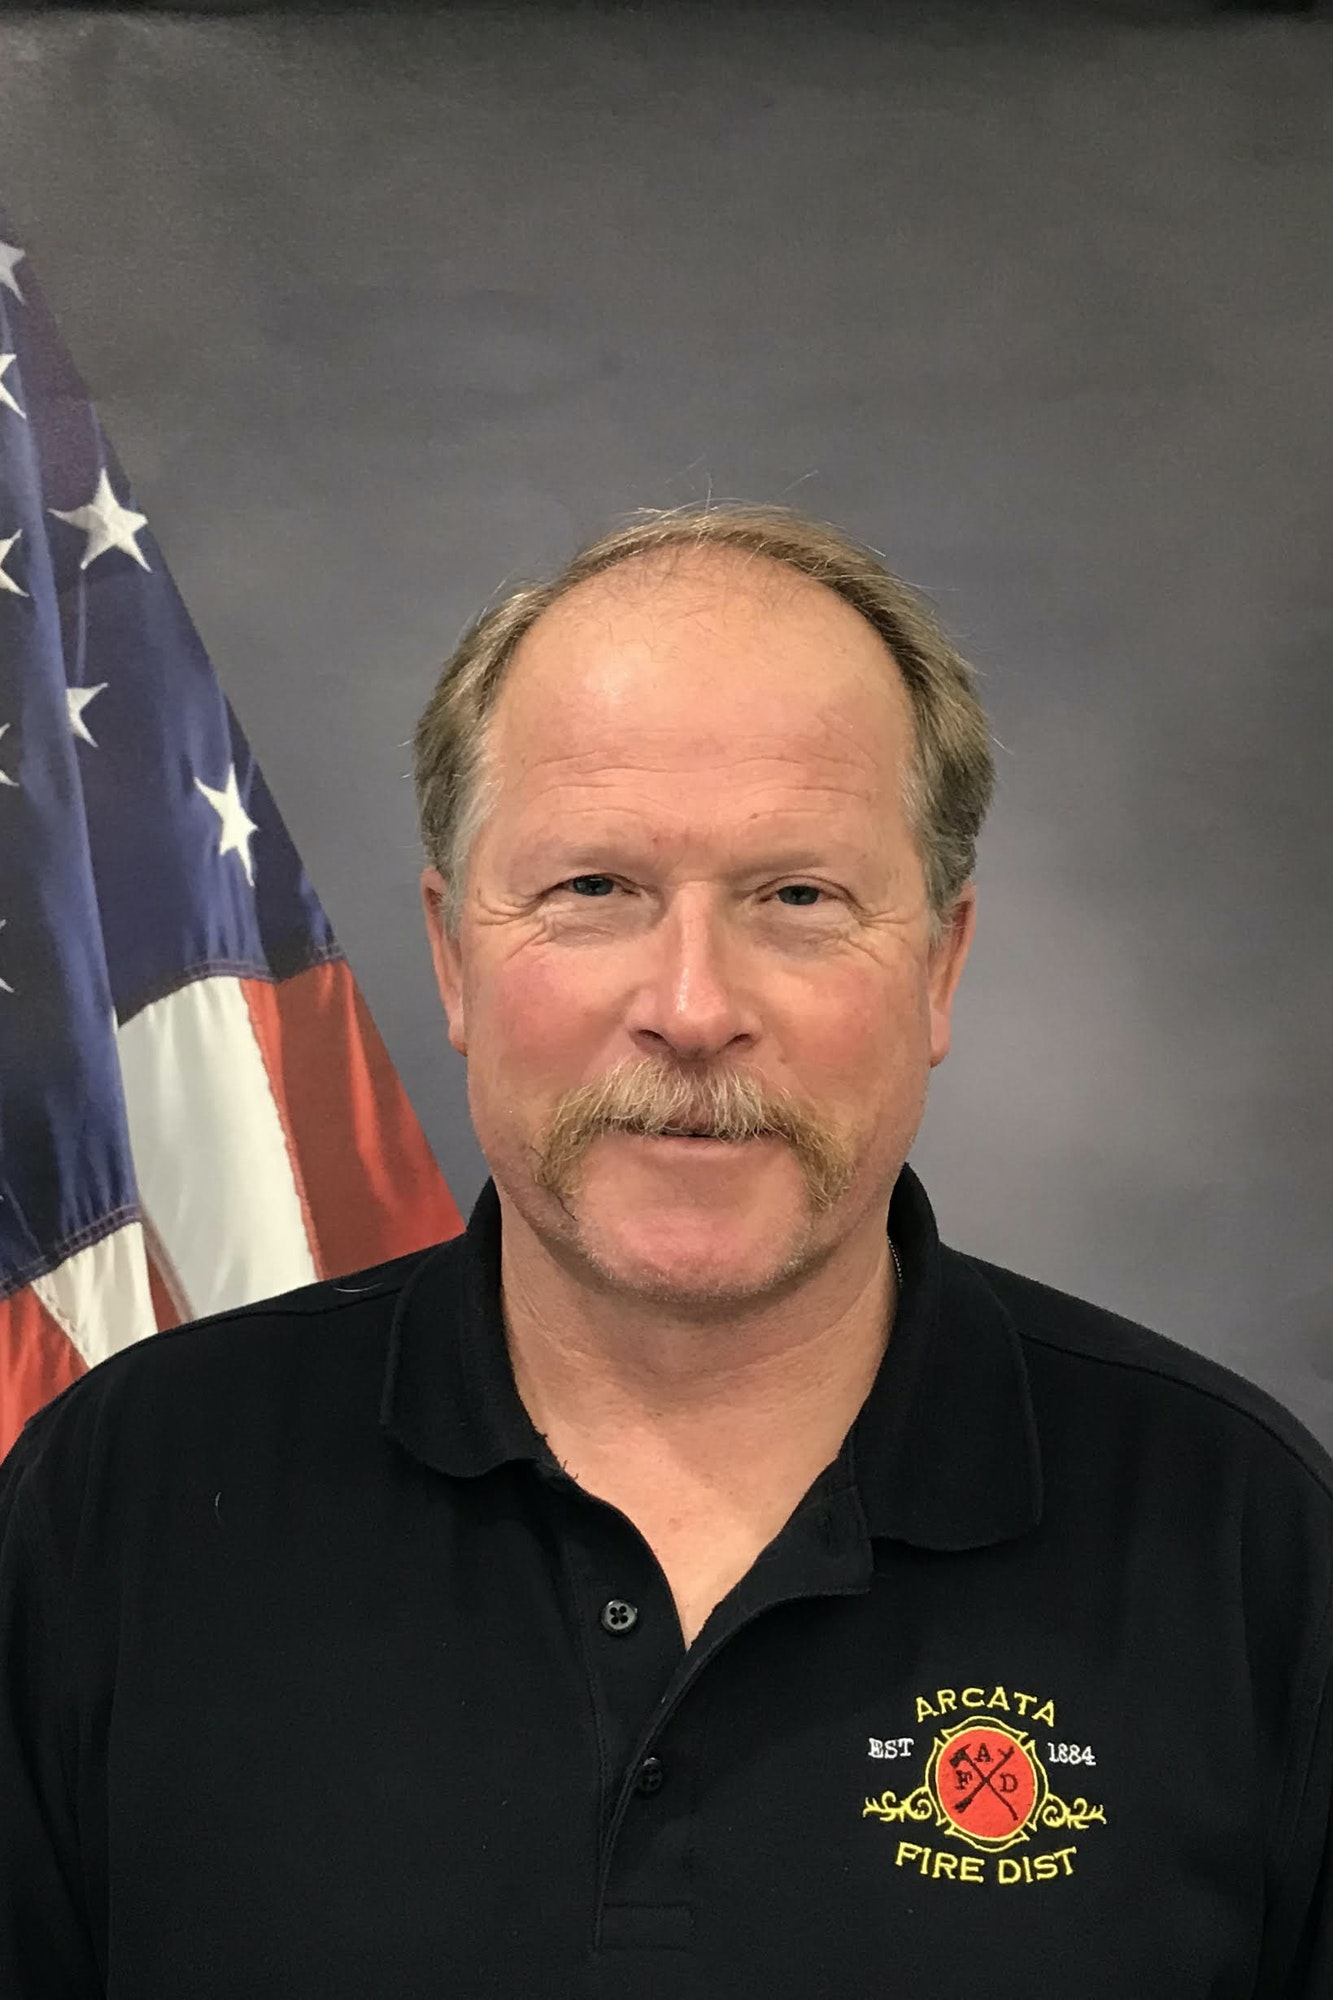 Staff photo of Fire Marshal.